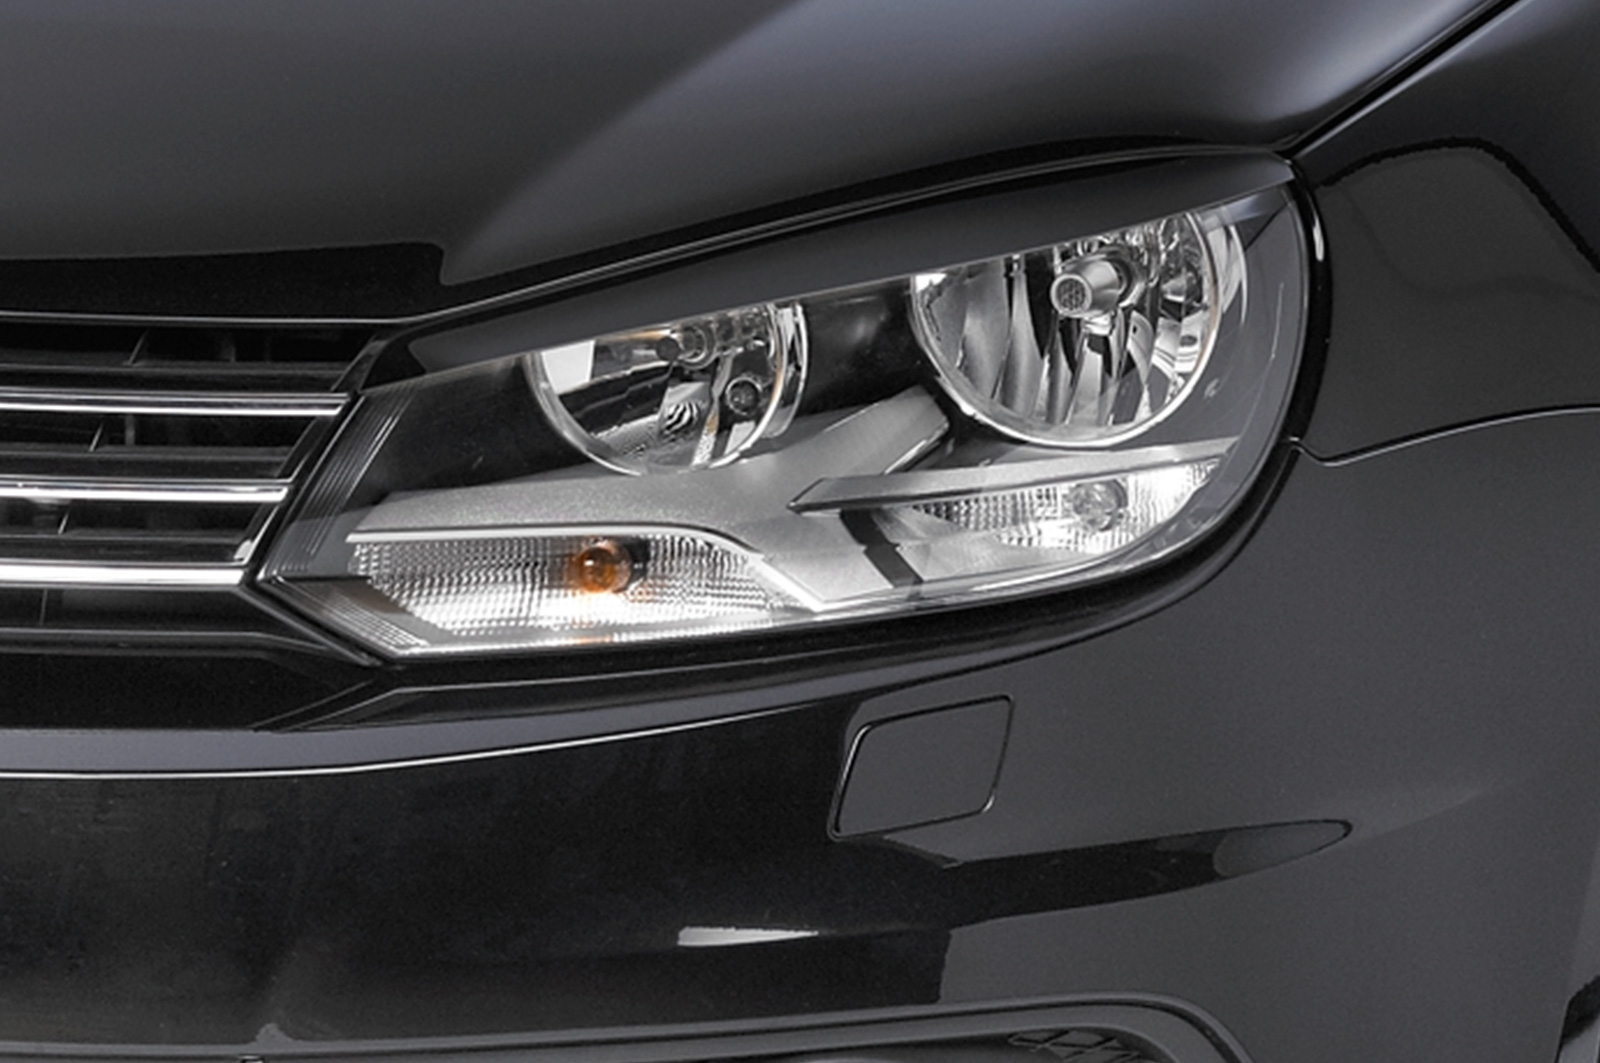 VW Eos (01:11 on) Headlight Brows - ABS